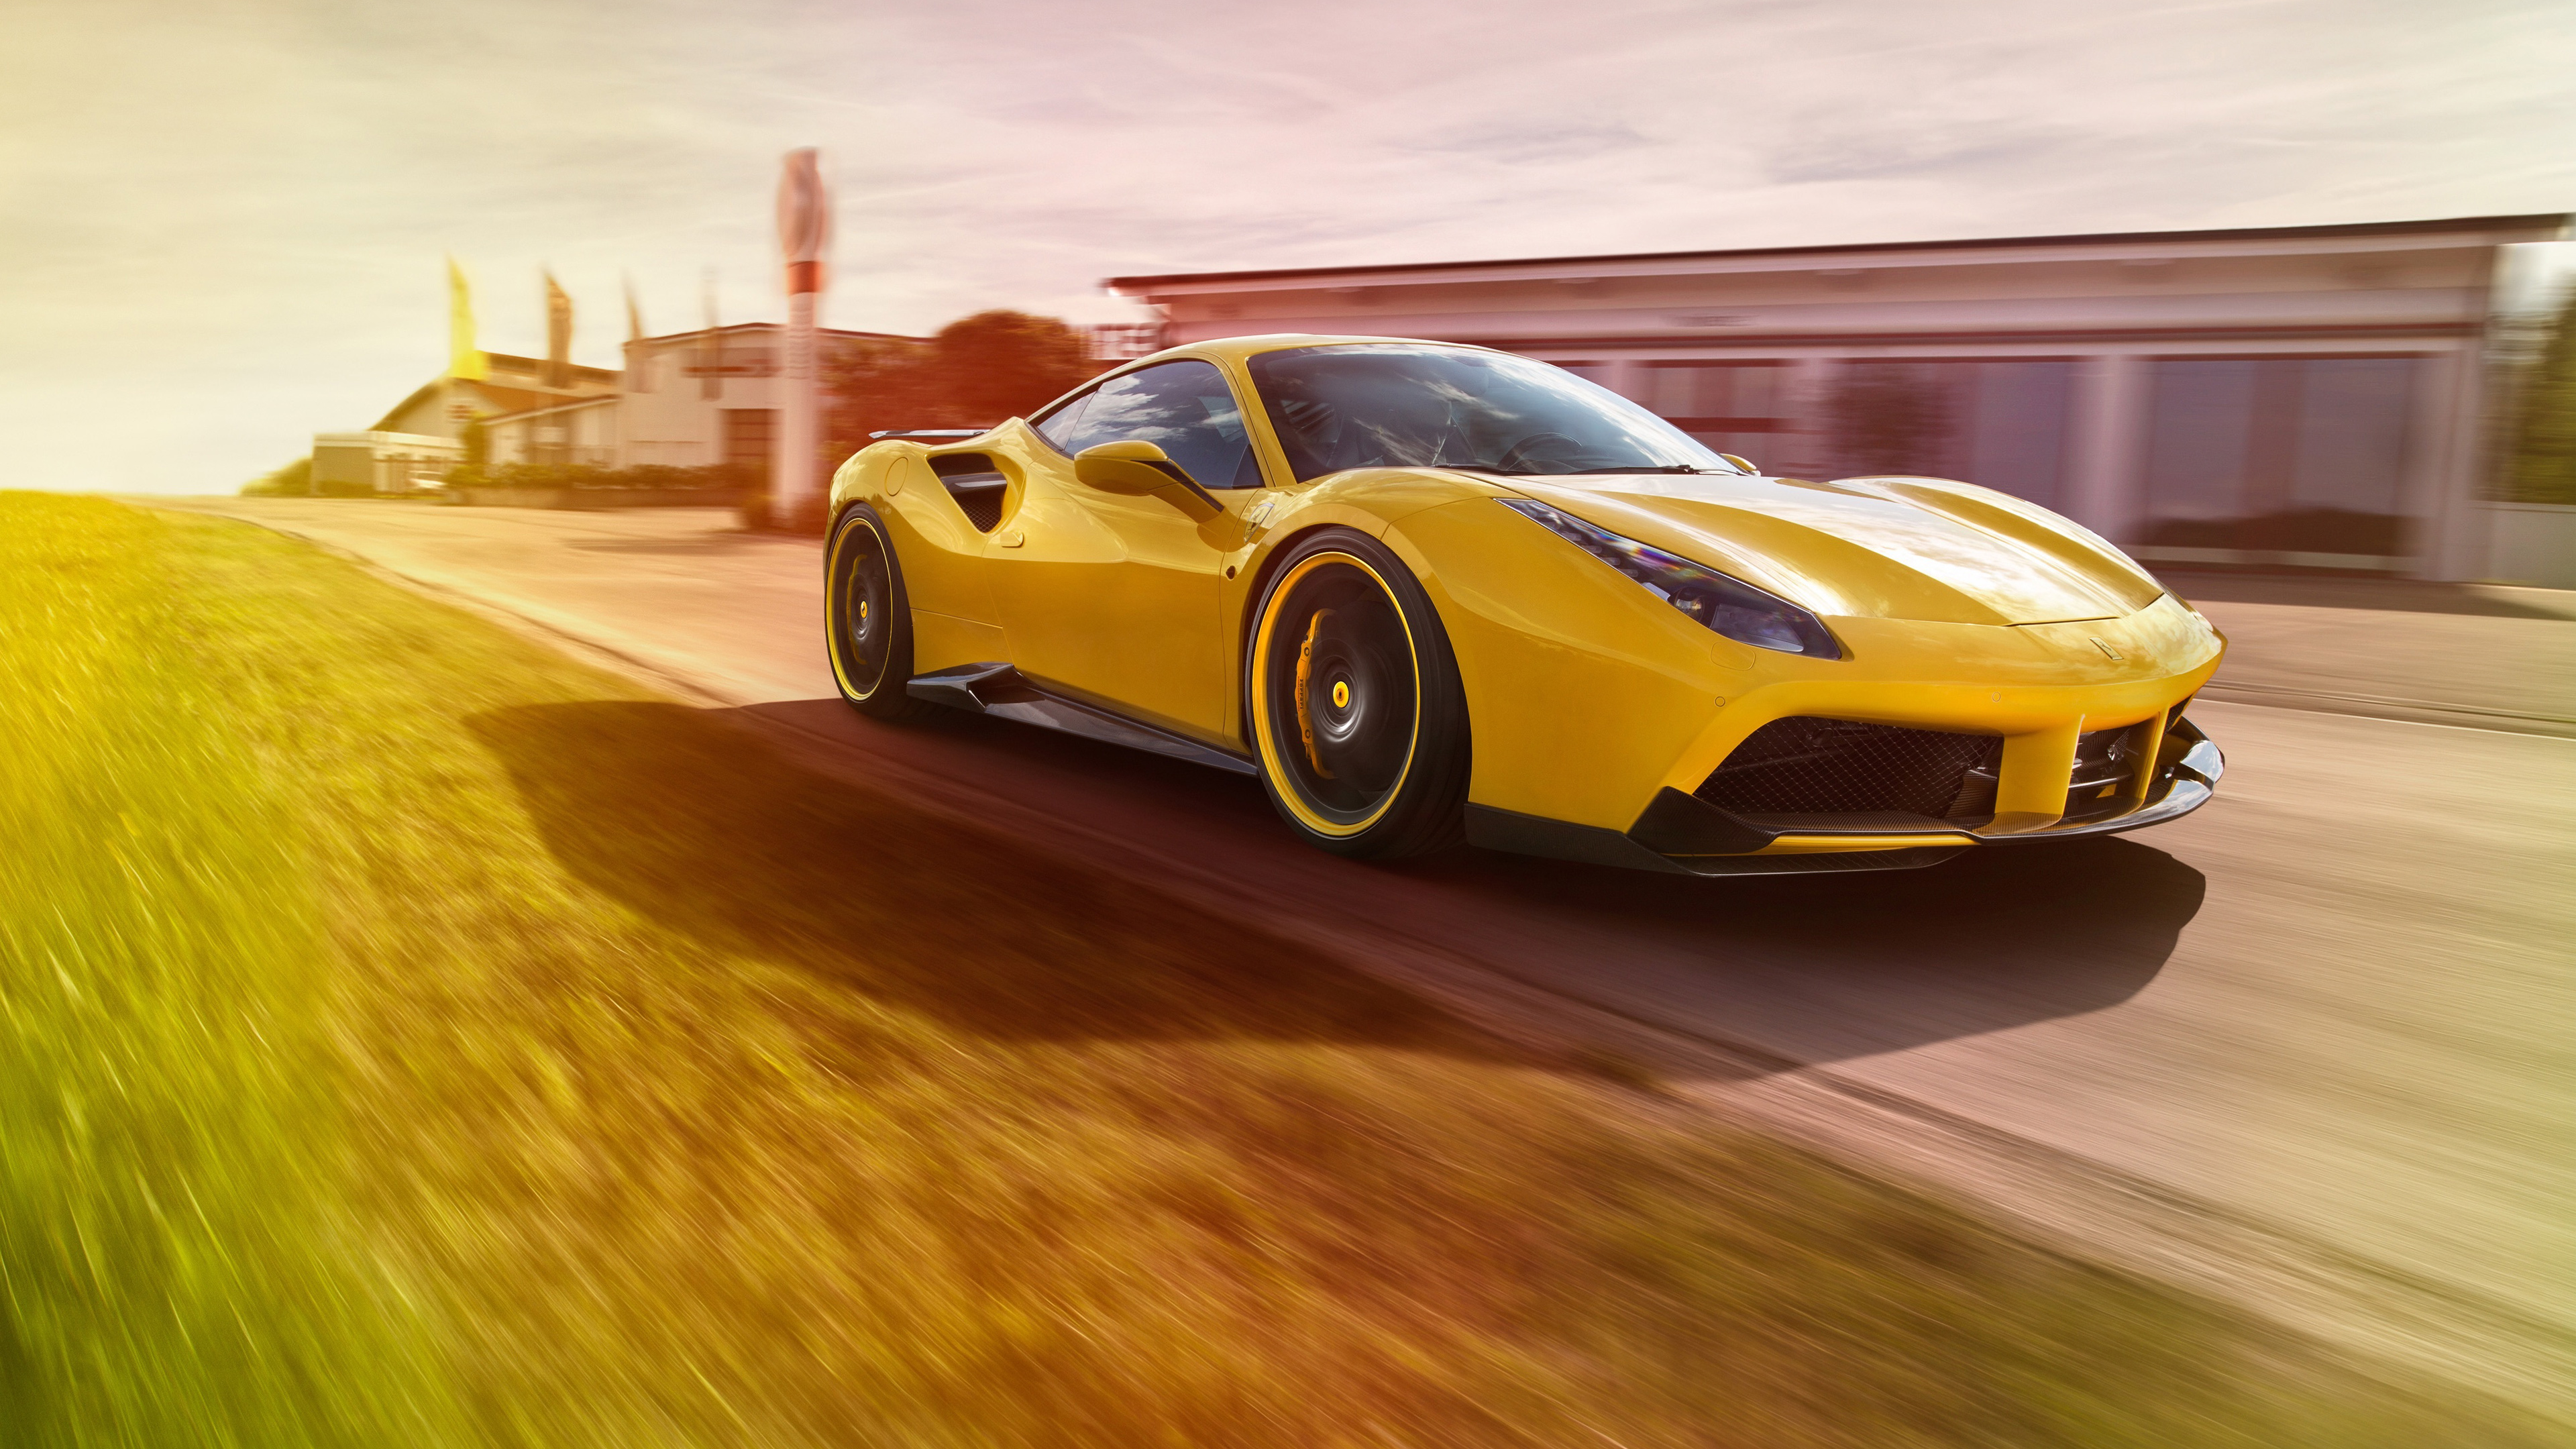 2016 Ferrari 488 GTS Novitec Rosso 4K Wallpaper | HD Car Wallpapers